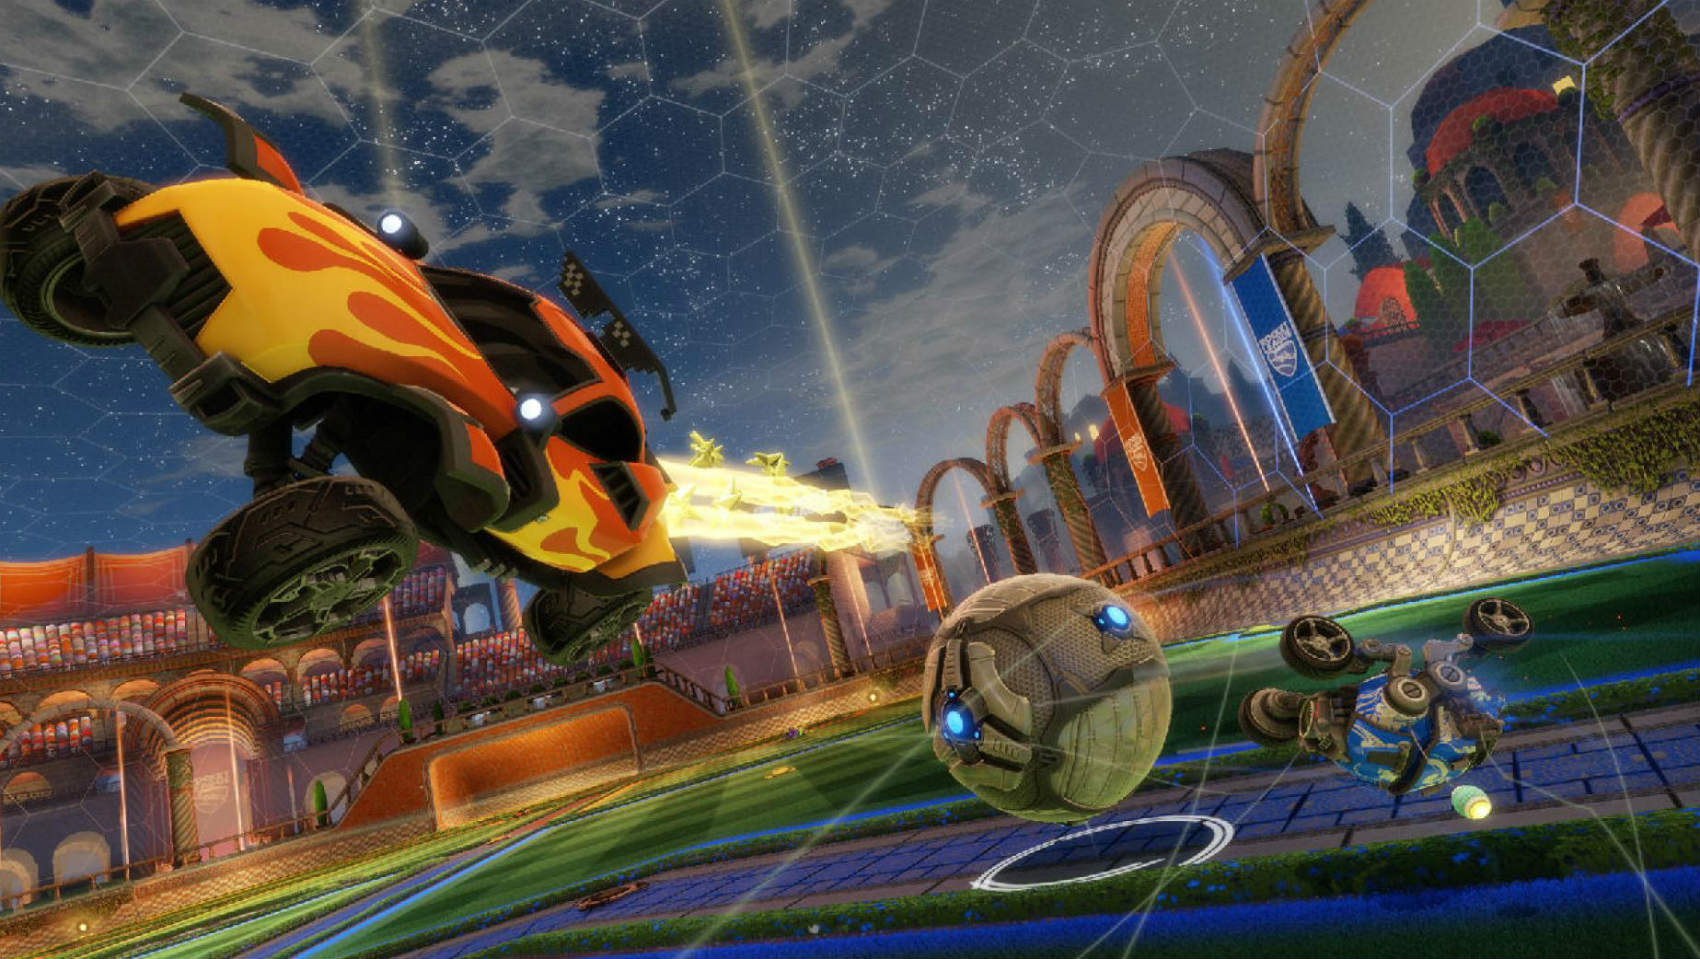 Rocket League Score Tips and tricks (PS4, Xbox One, PC, Switch) - How To Score More Goals